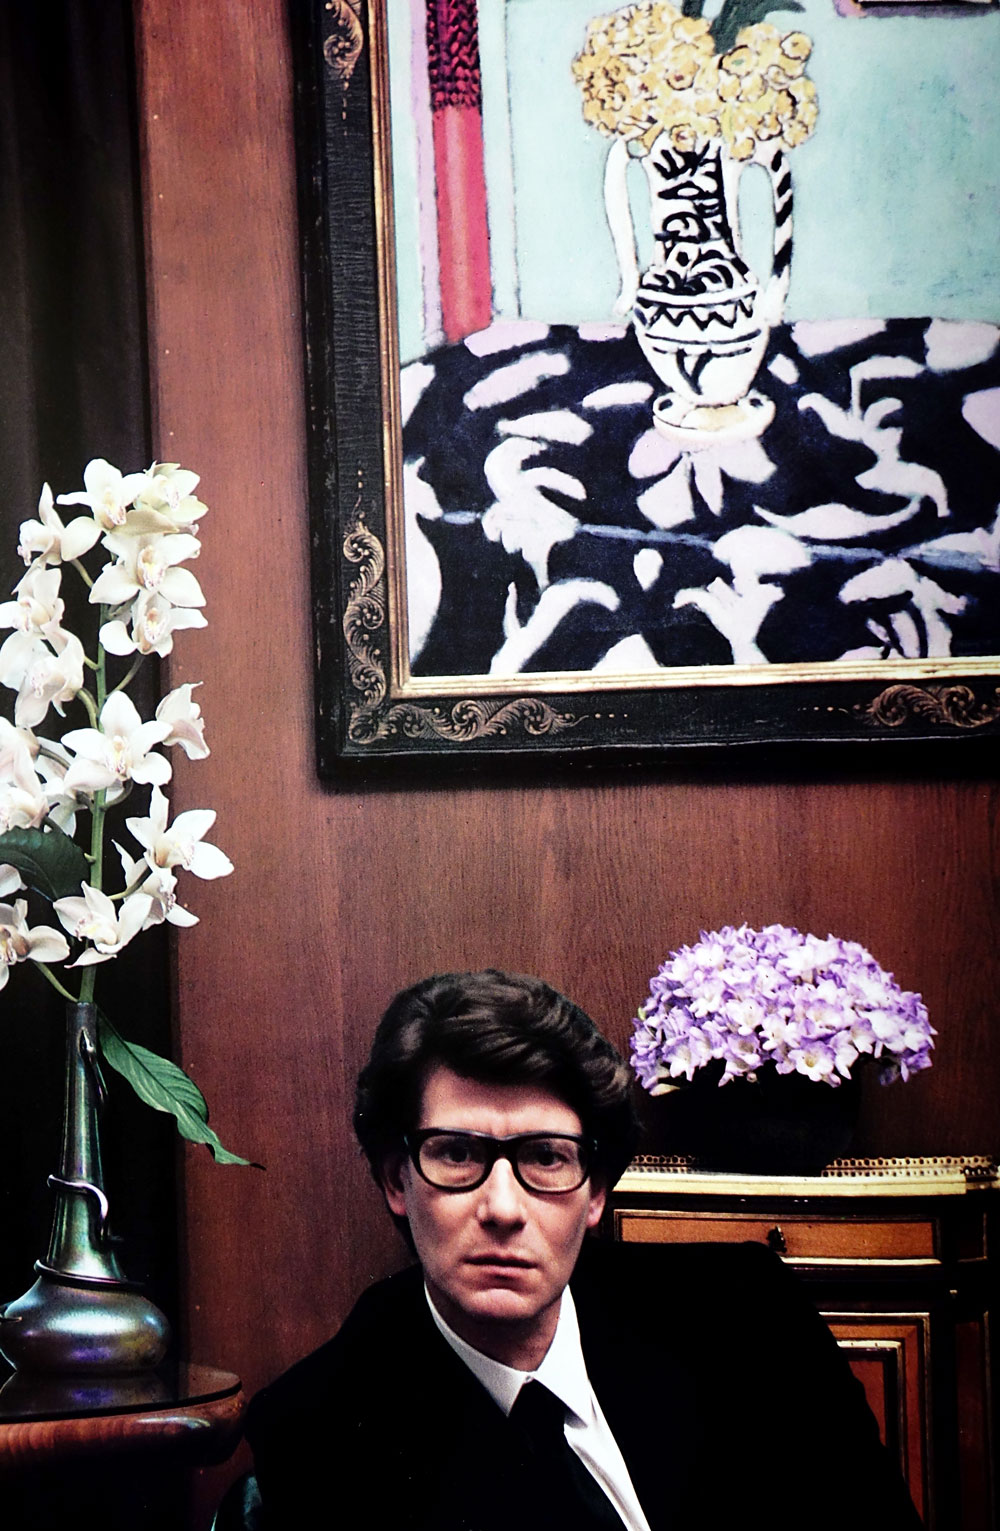 Yves Saint Laurent at his apartment on the rue Babylon photographed by Duane Michel